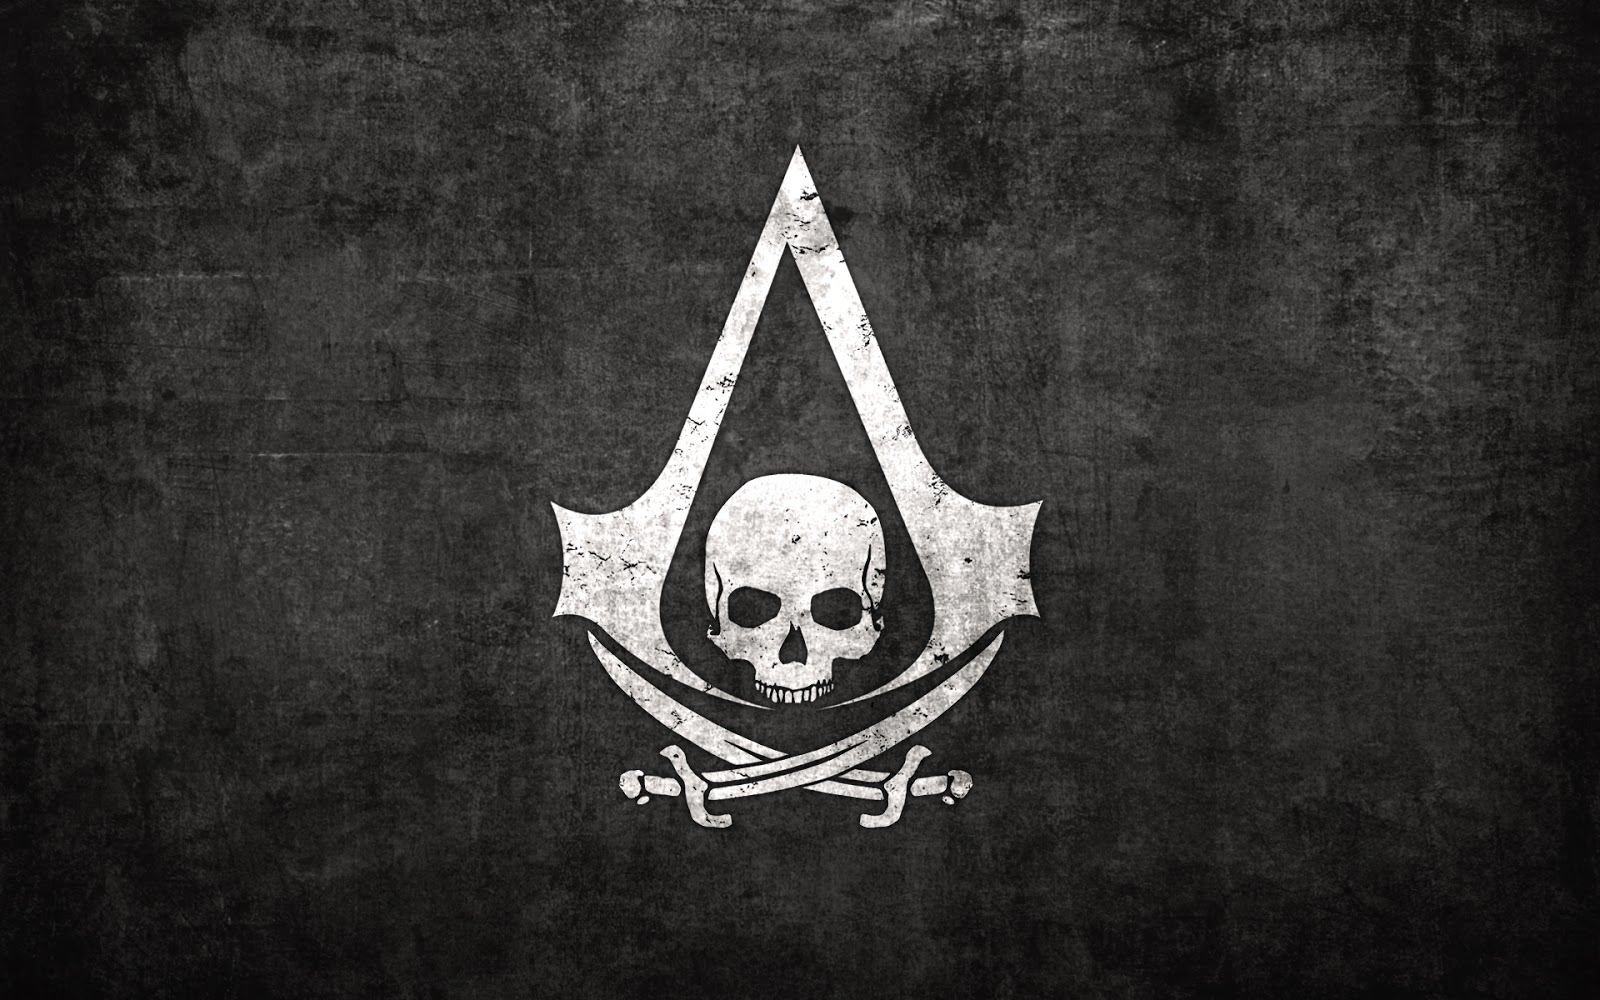 Group of mrwallpapercom wallpapers assassins creed iv black photo collection best games wallpaper mrwallpapercom wallpapers assassins creed iv black mrwallpapercom voltagebd Gallery